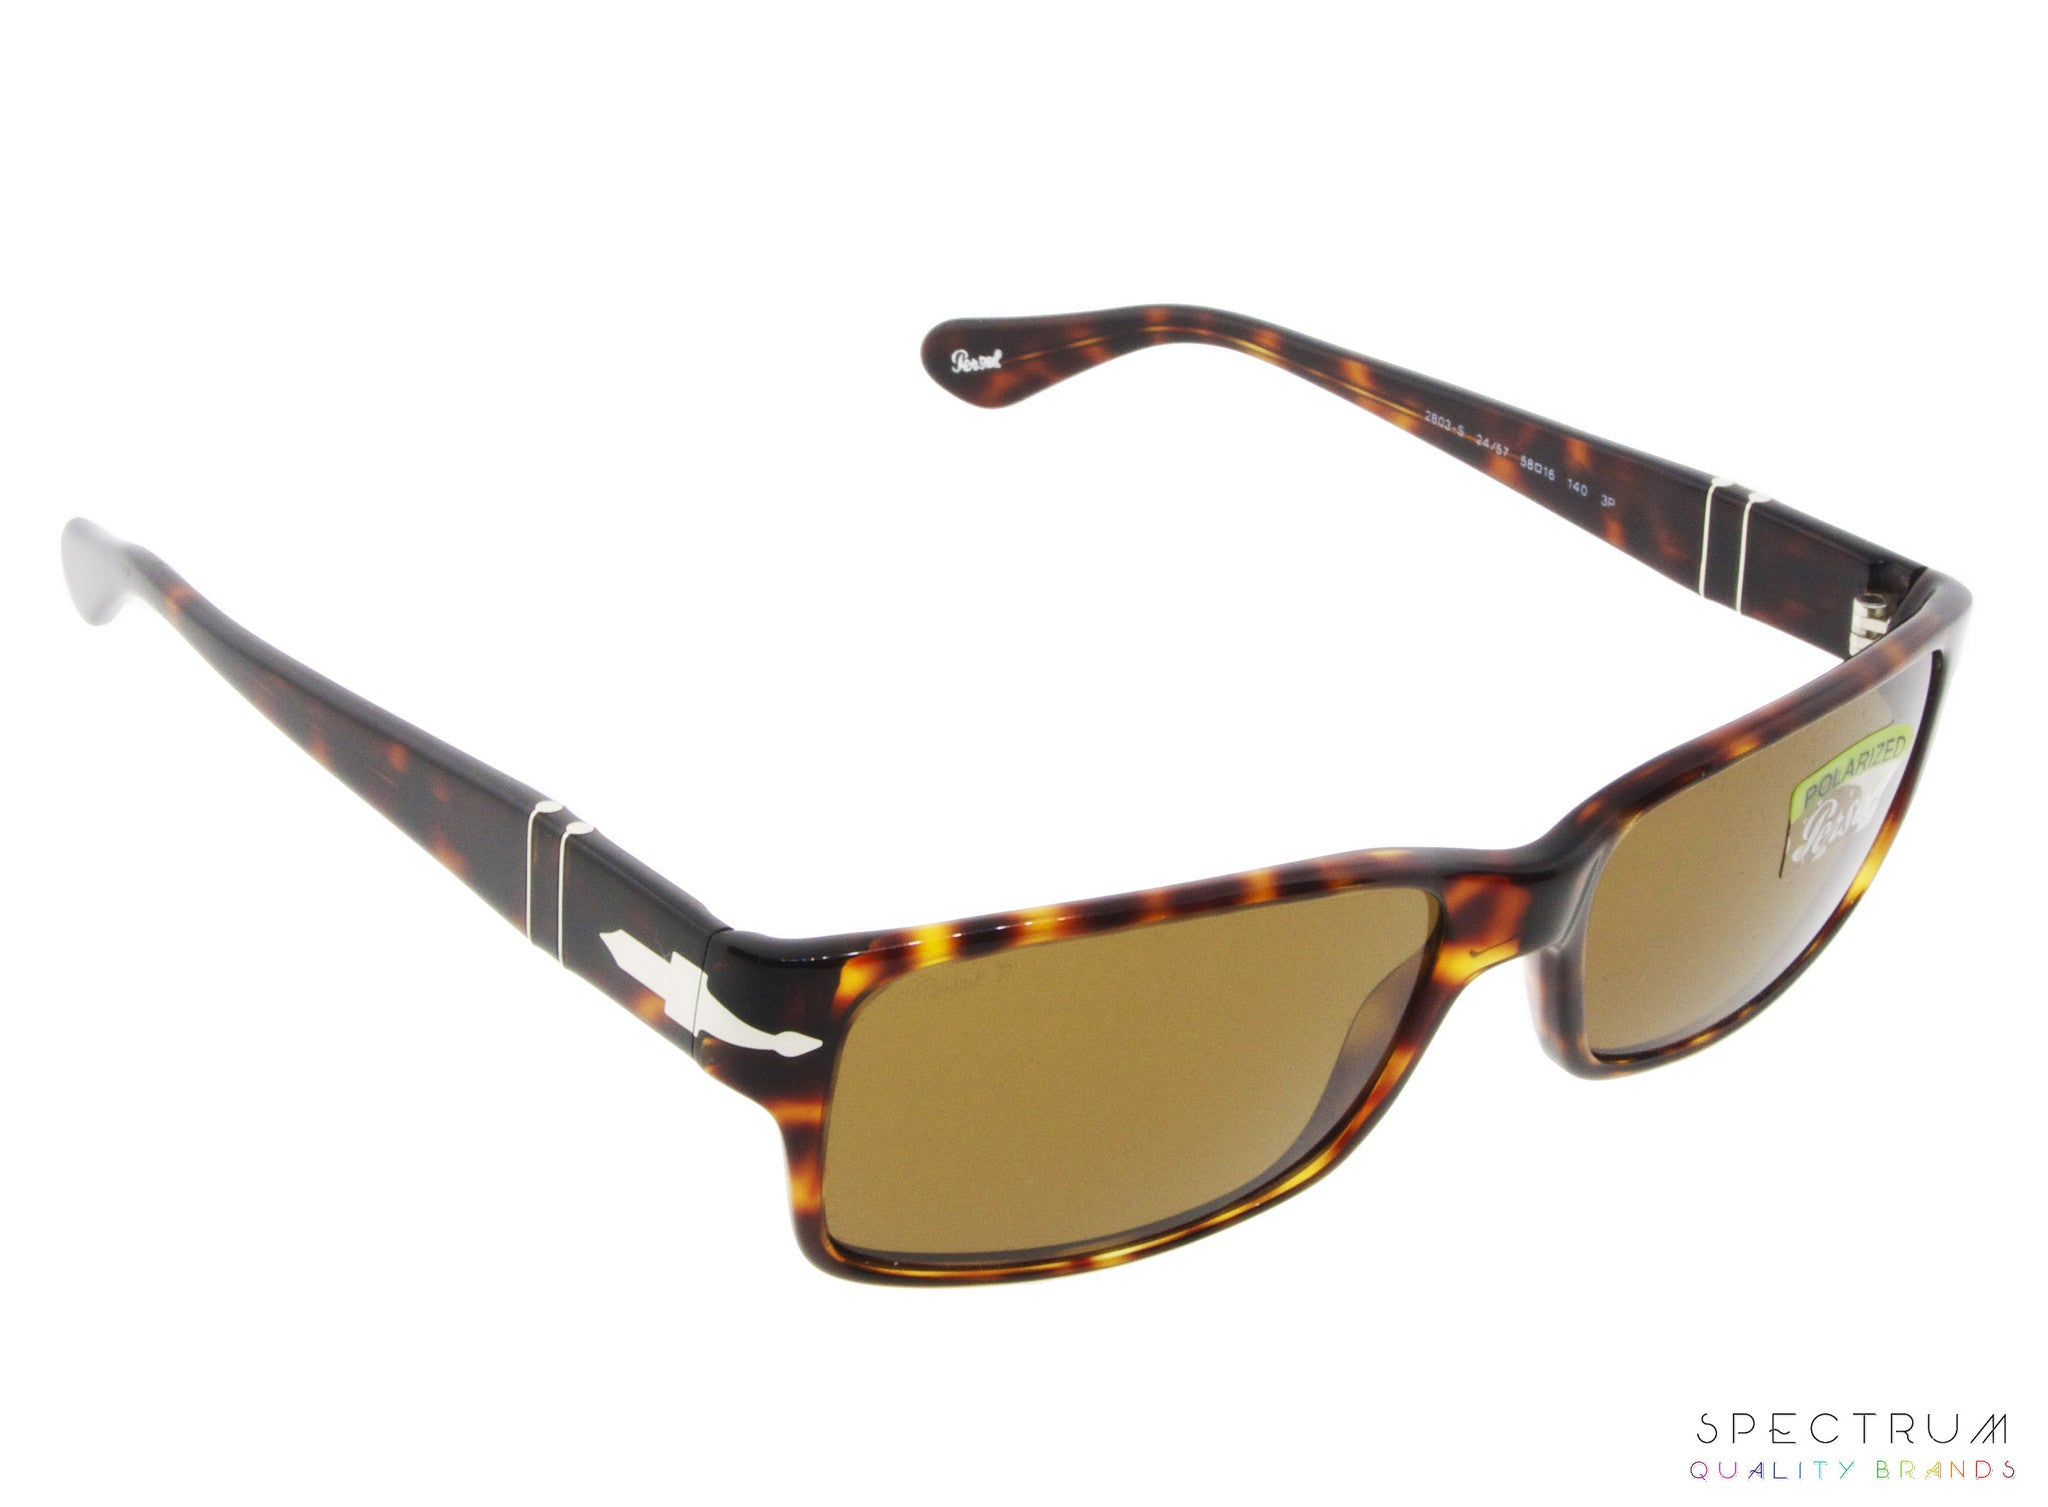 842e6bf987 ... Persol Sunglasses 2803S 24 57 Havana with Brown Polarized Lenses Size 58  ...